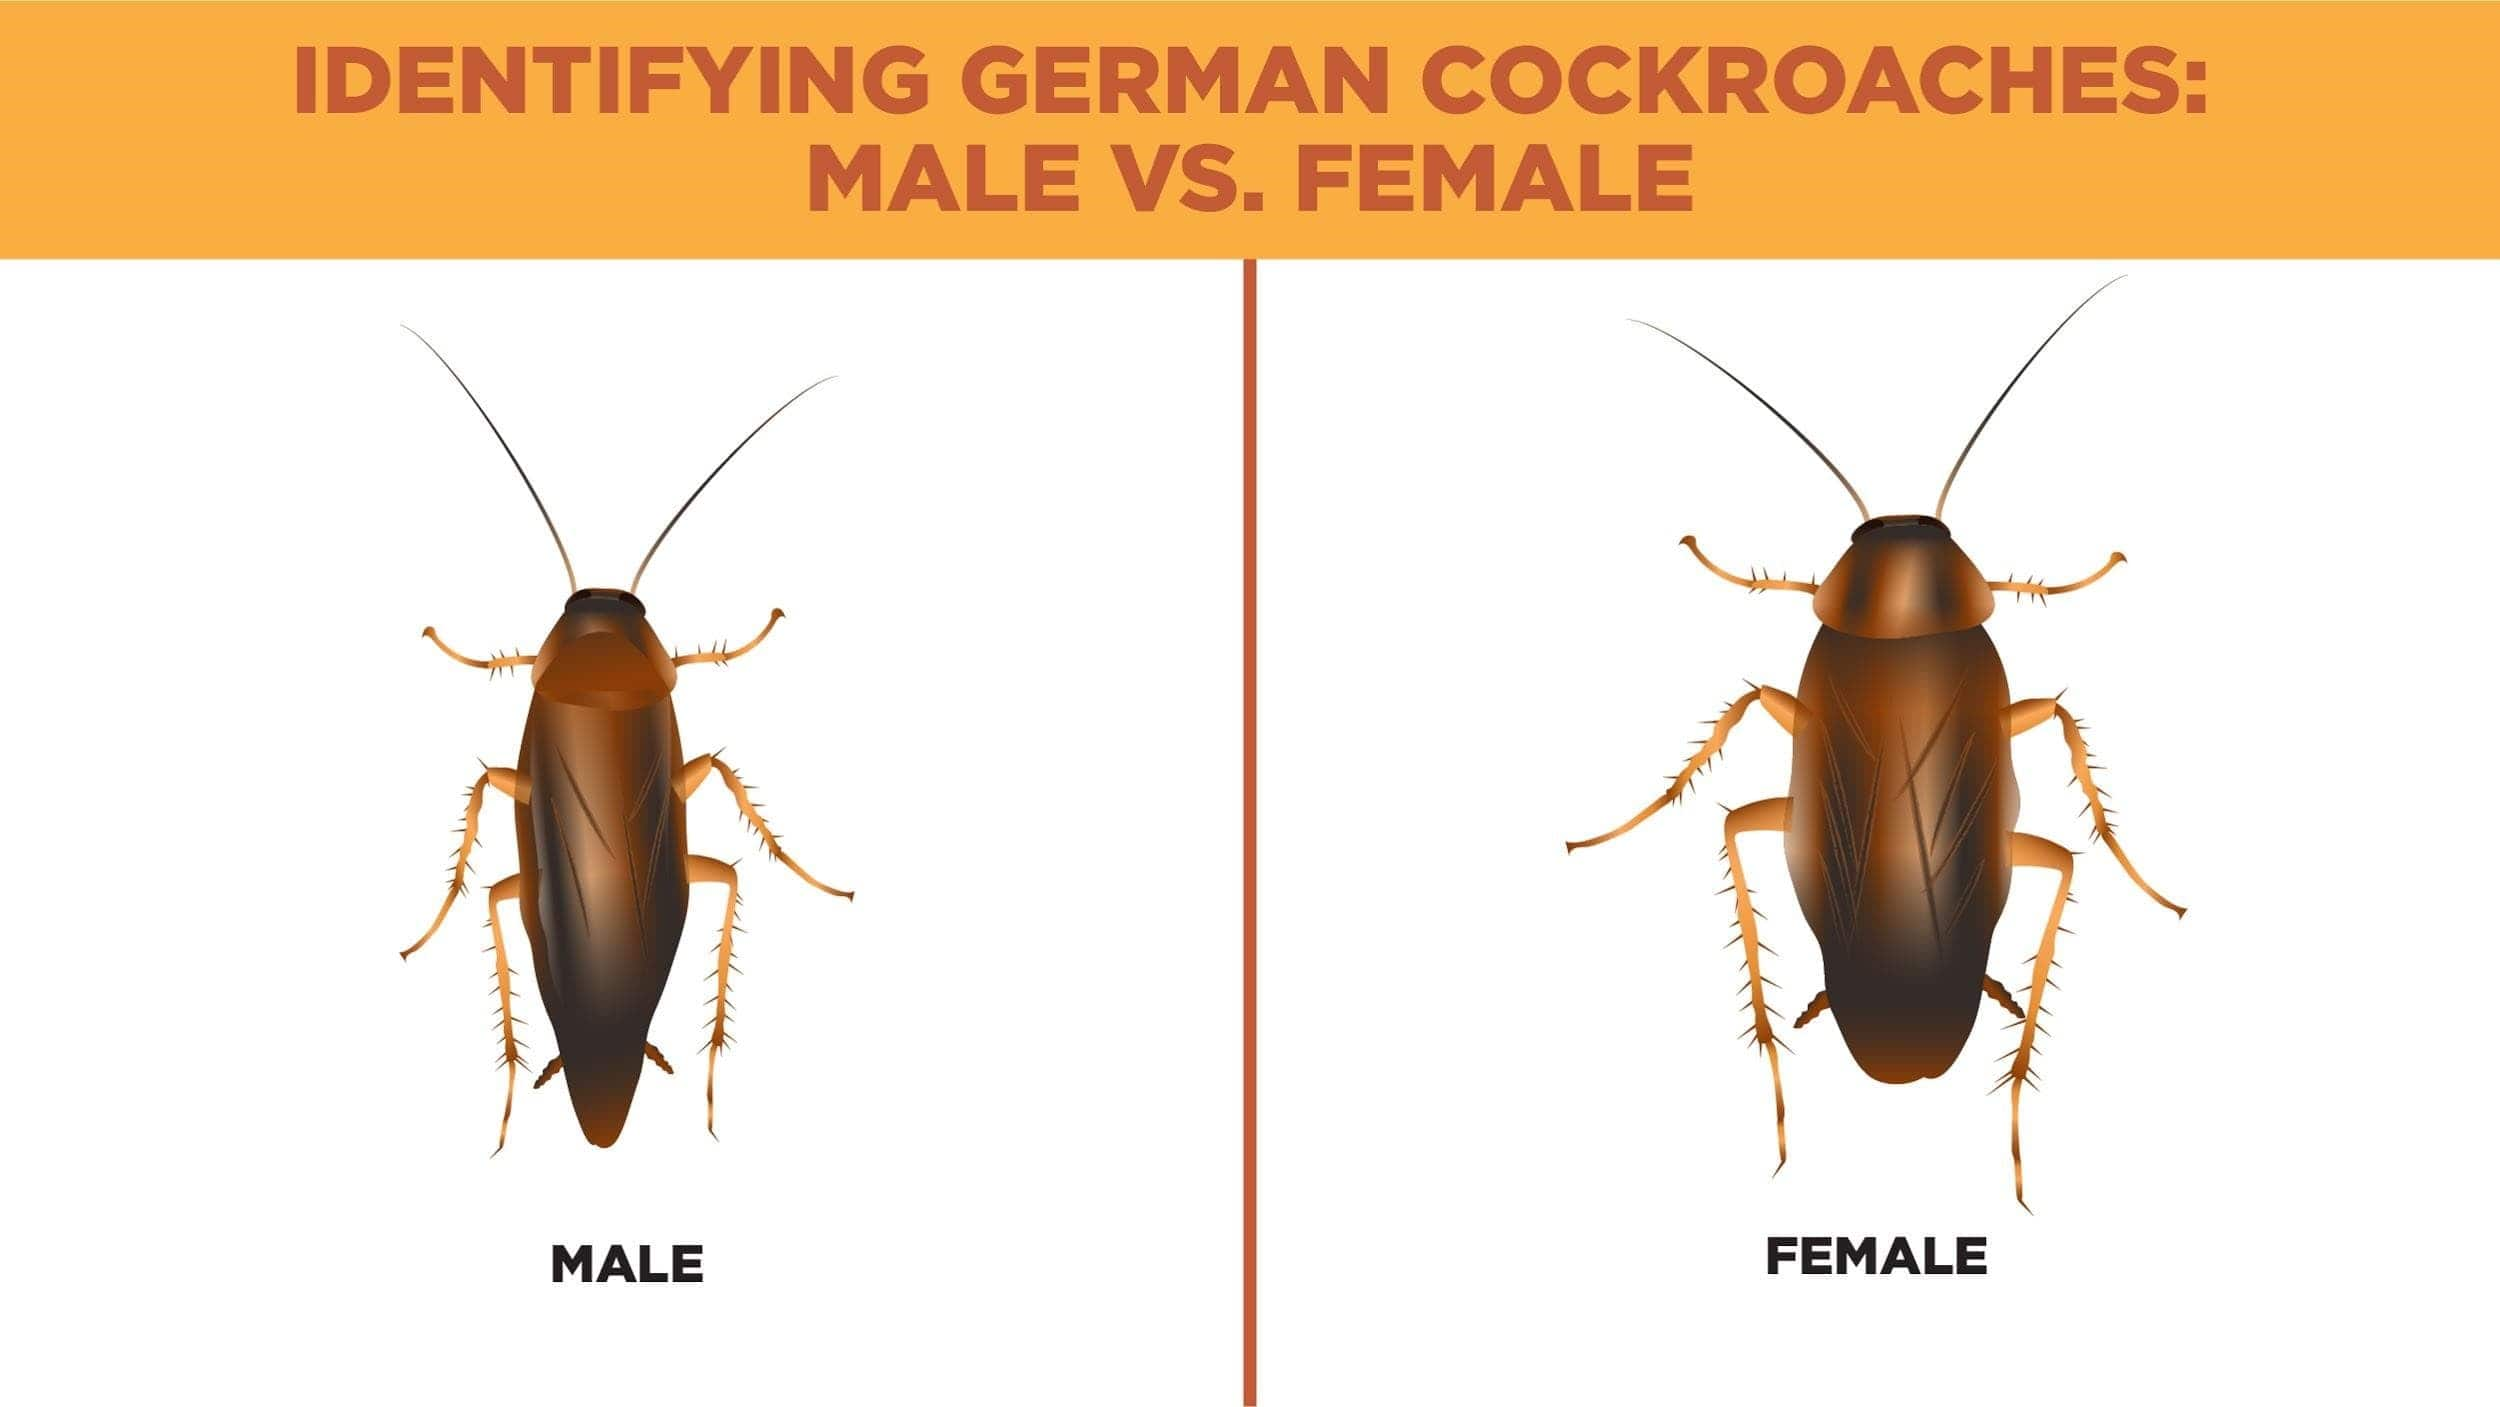 Identifying German cockroaches illustration featuring physical differences between male and female roaches.